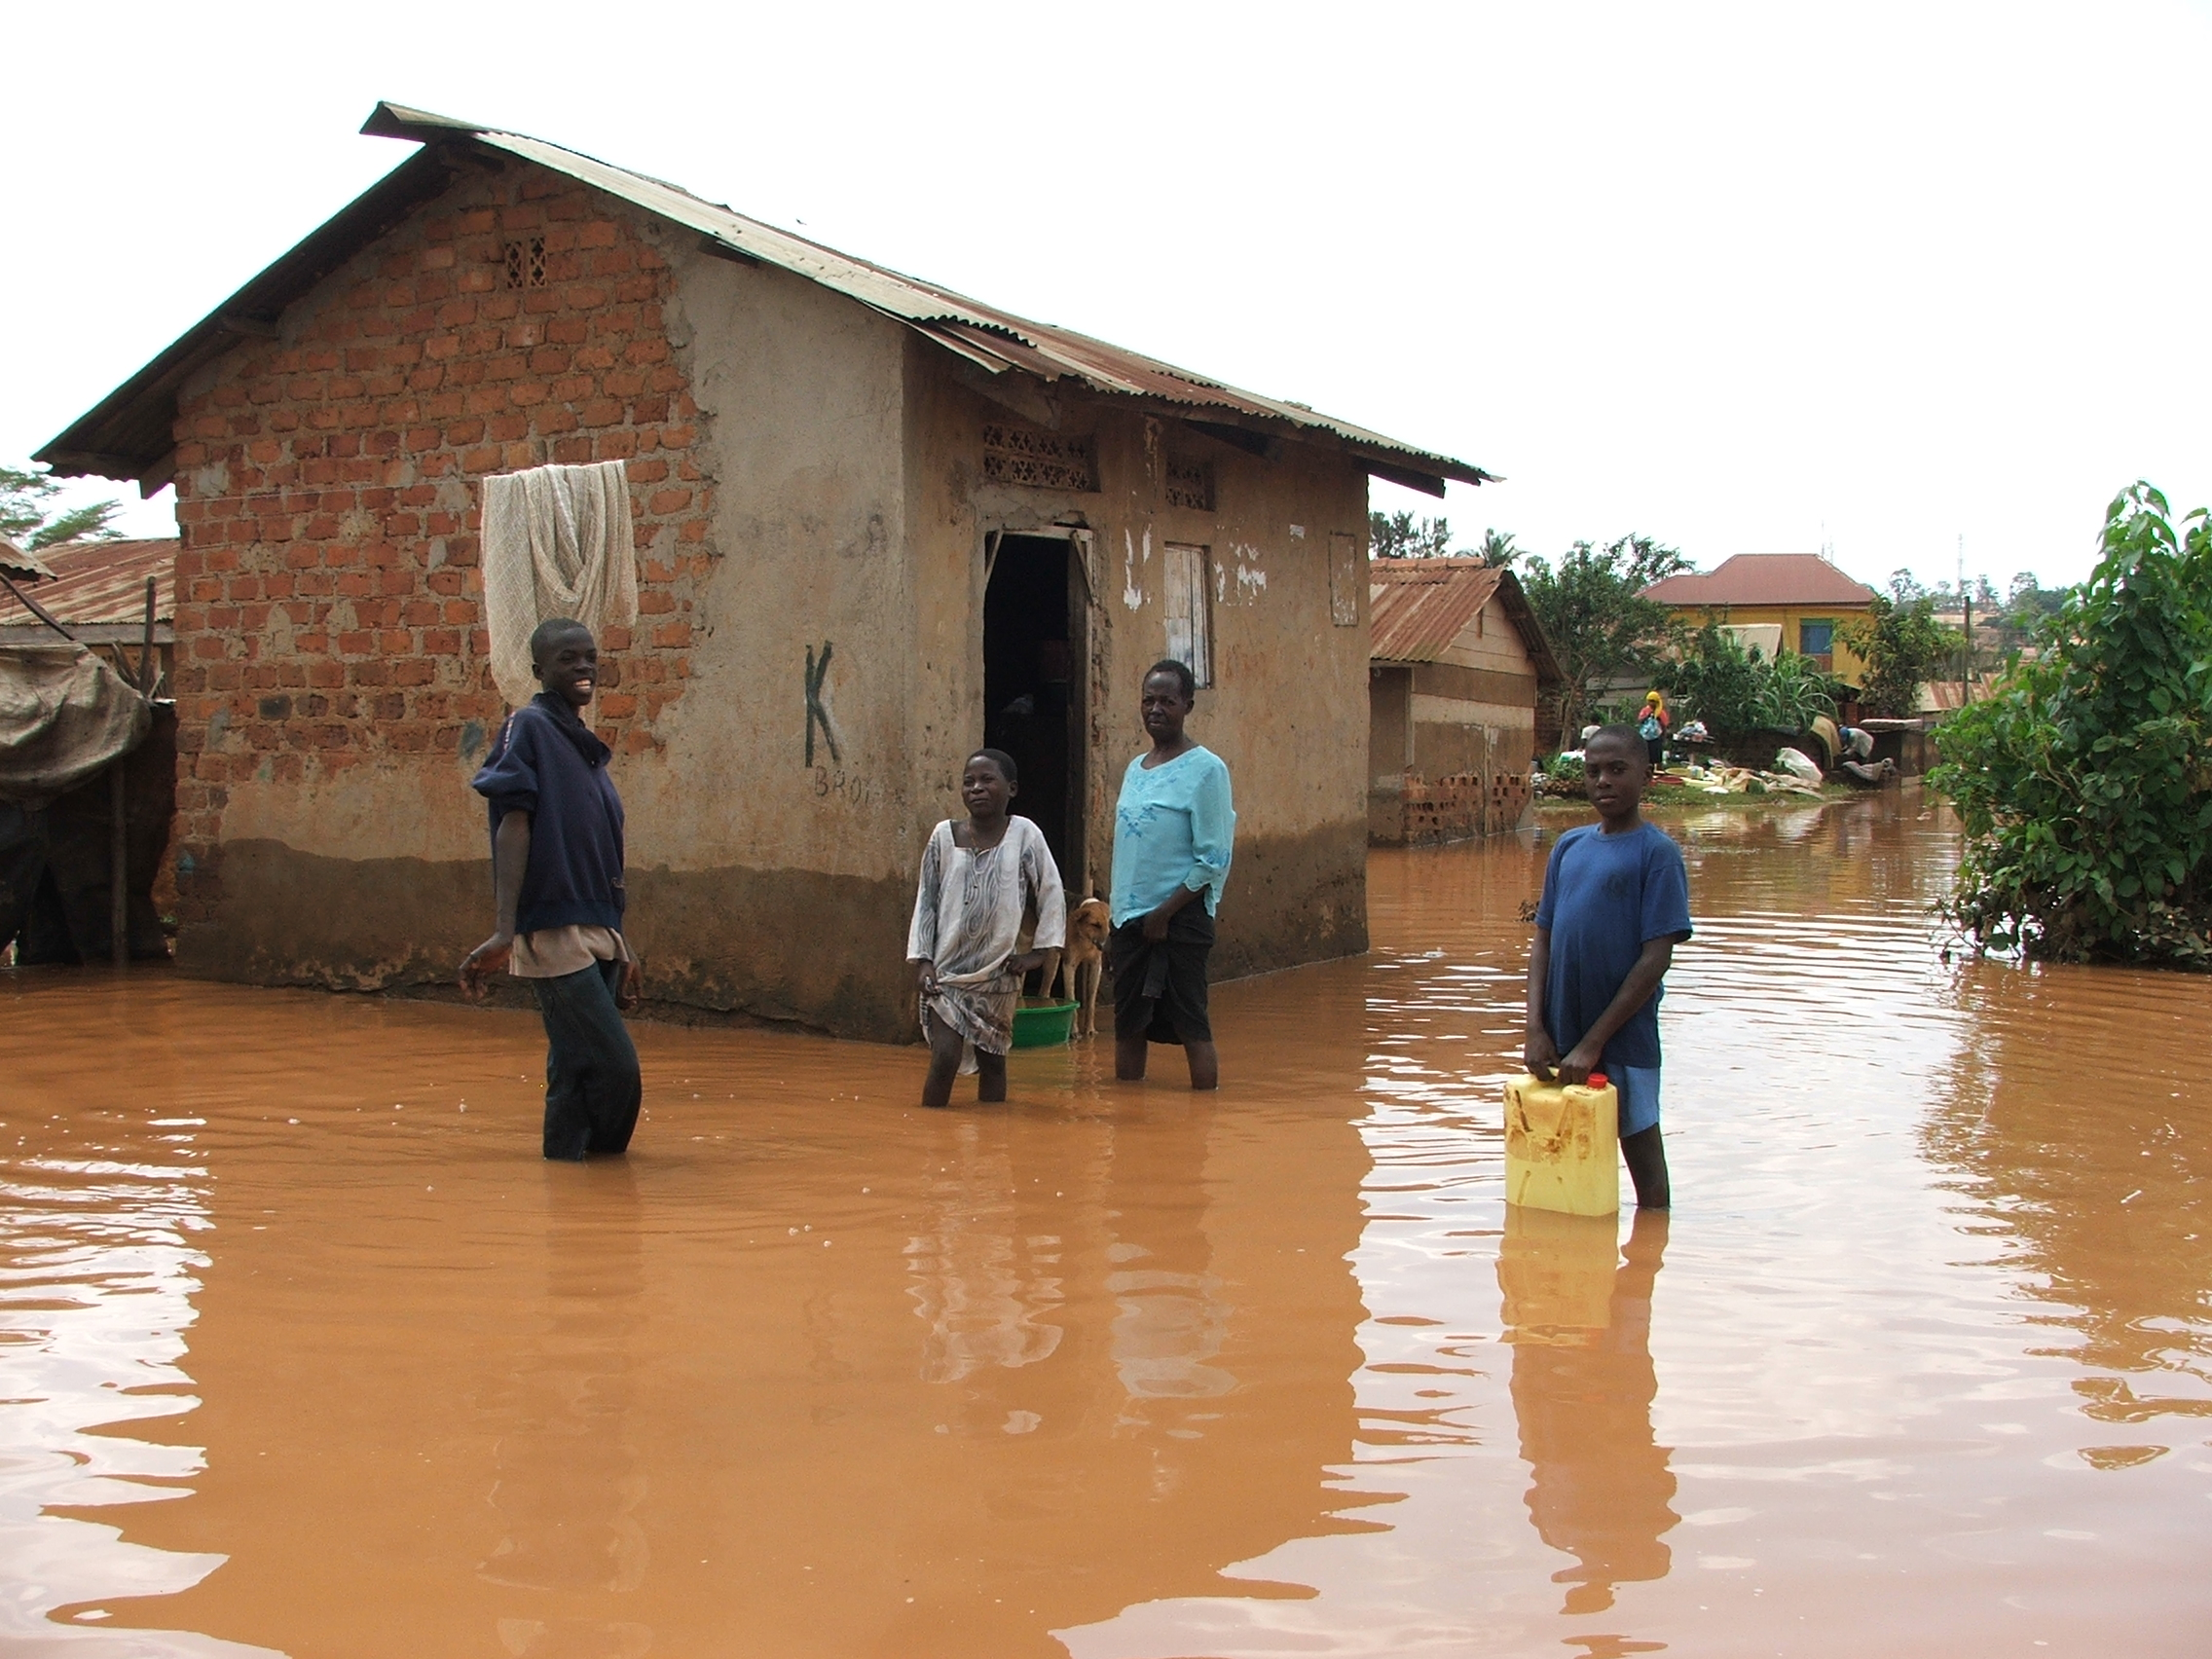 Regina & Jaliya outside their their home during one of the many floods they experience in Bwaise